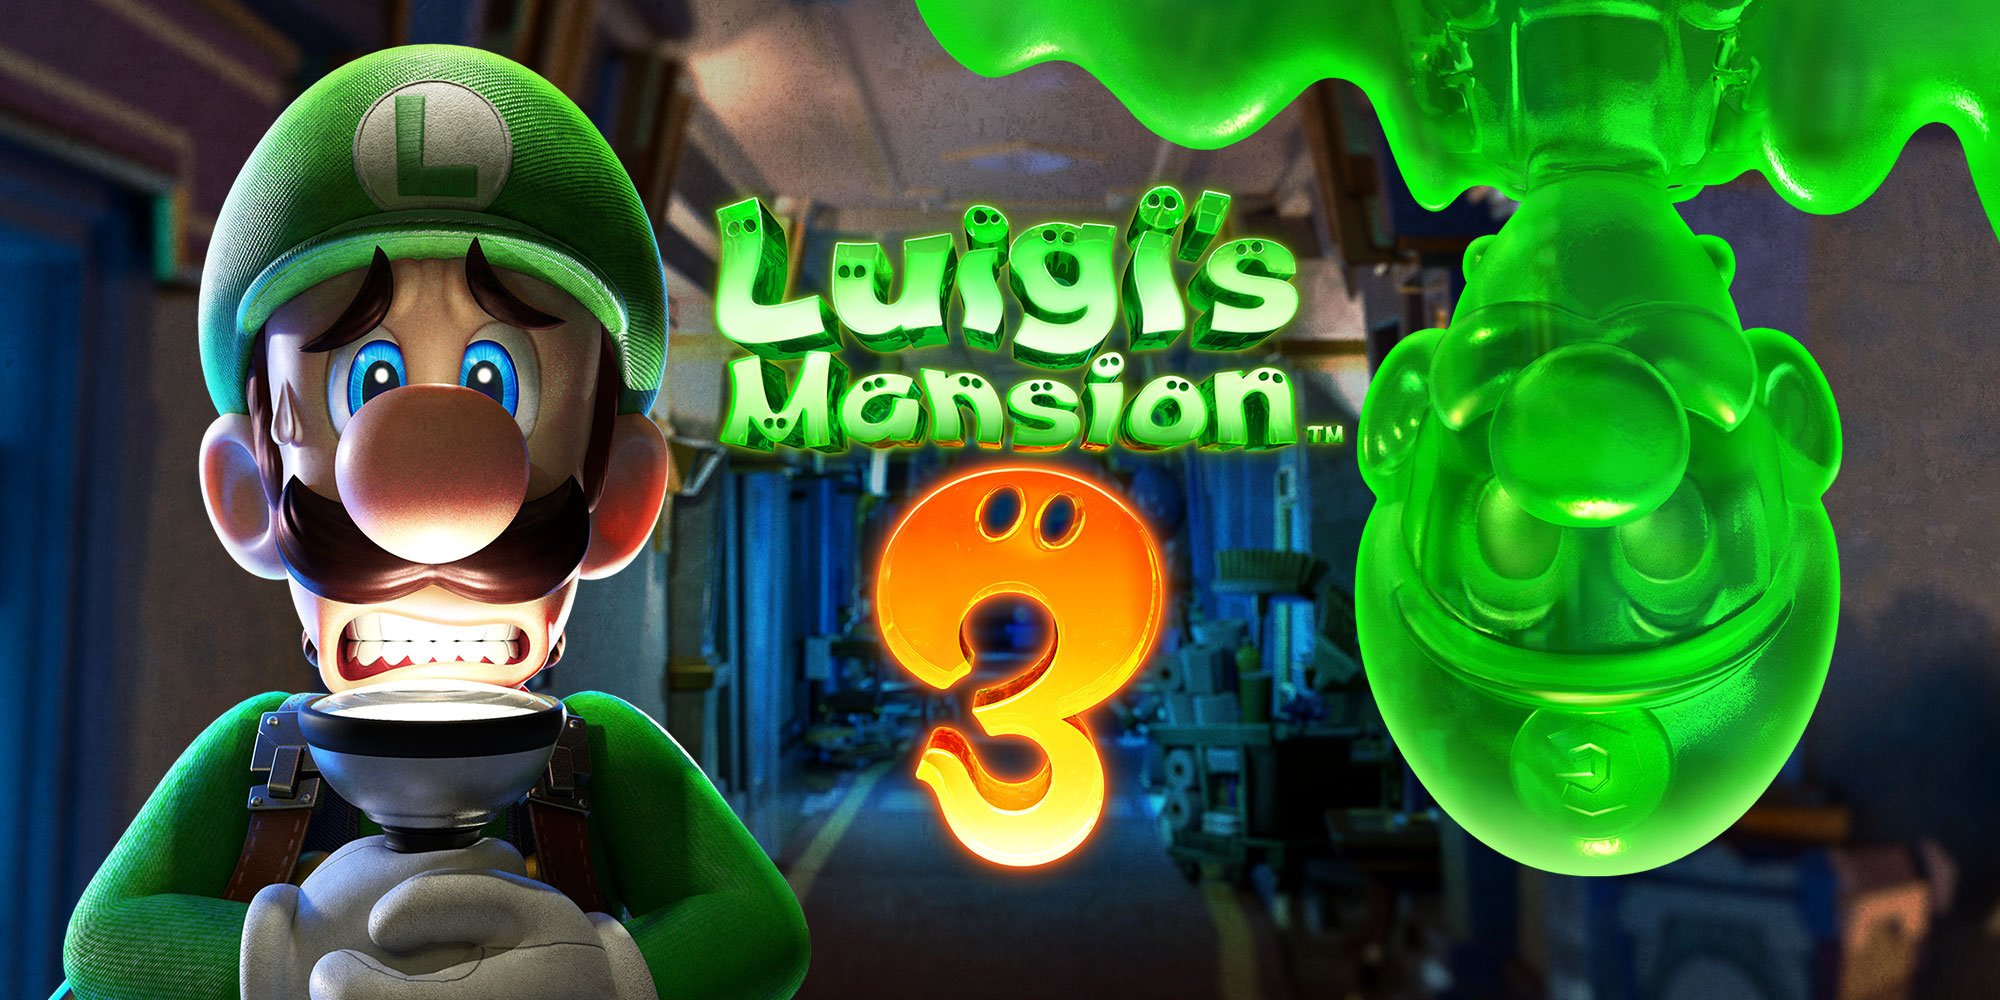 Luigi's Mansion 3 E3 2019 trailer, details, and screenshots